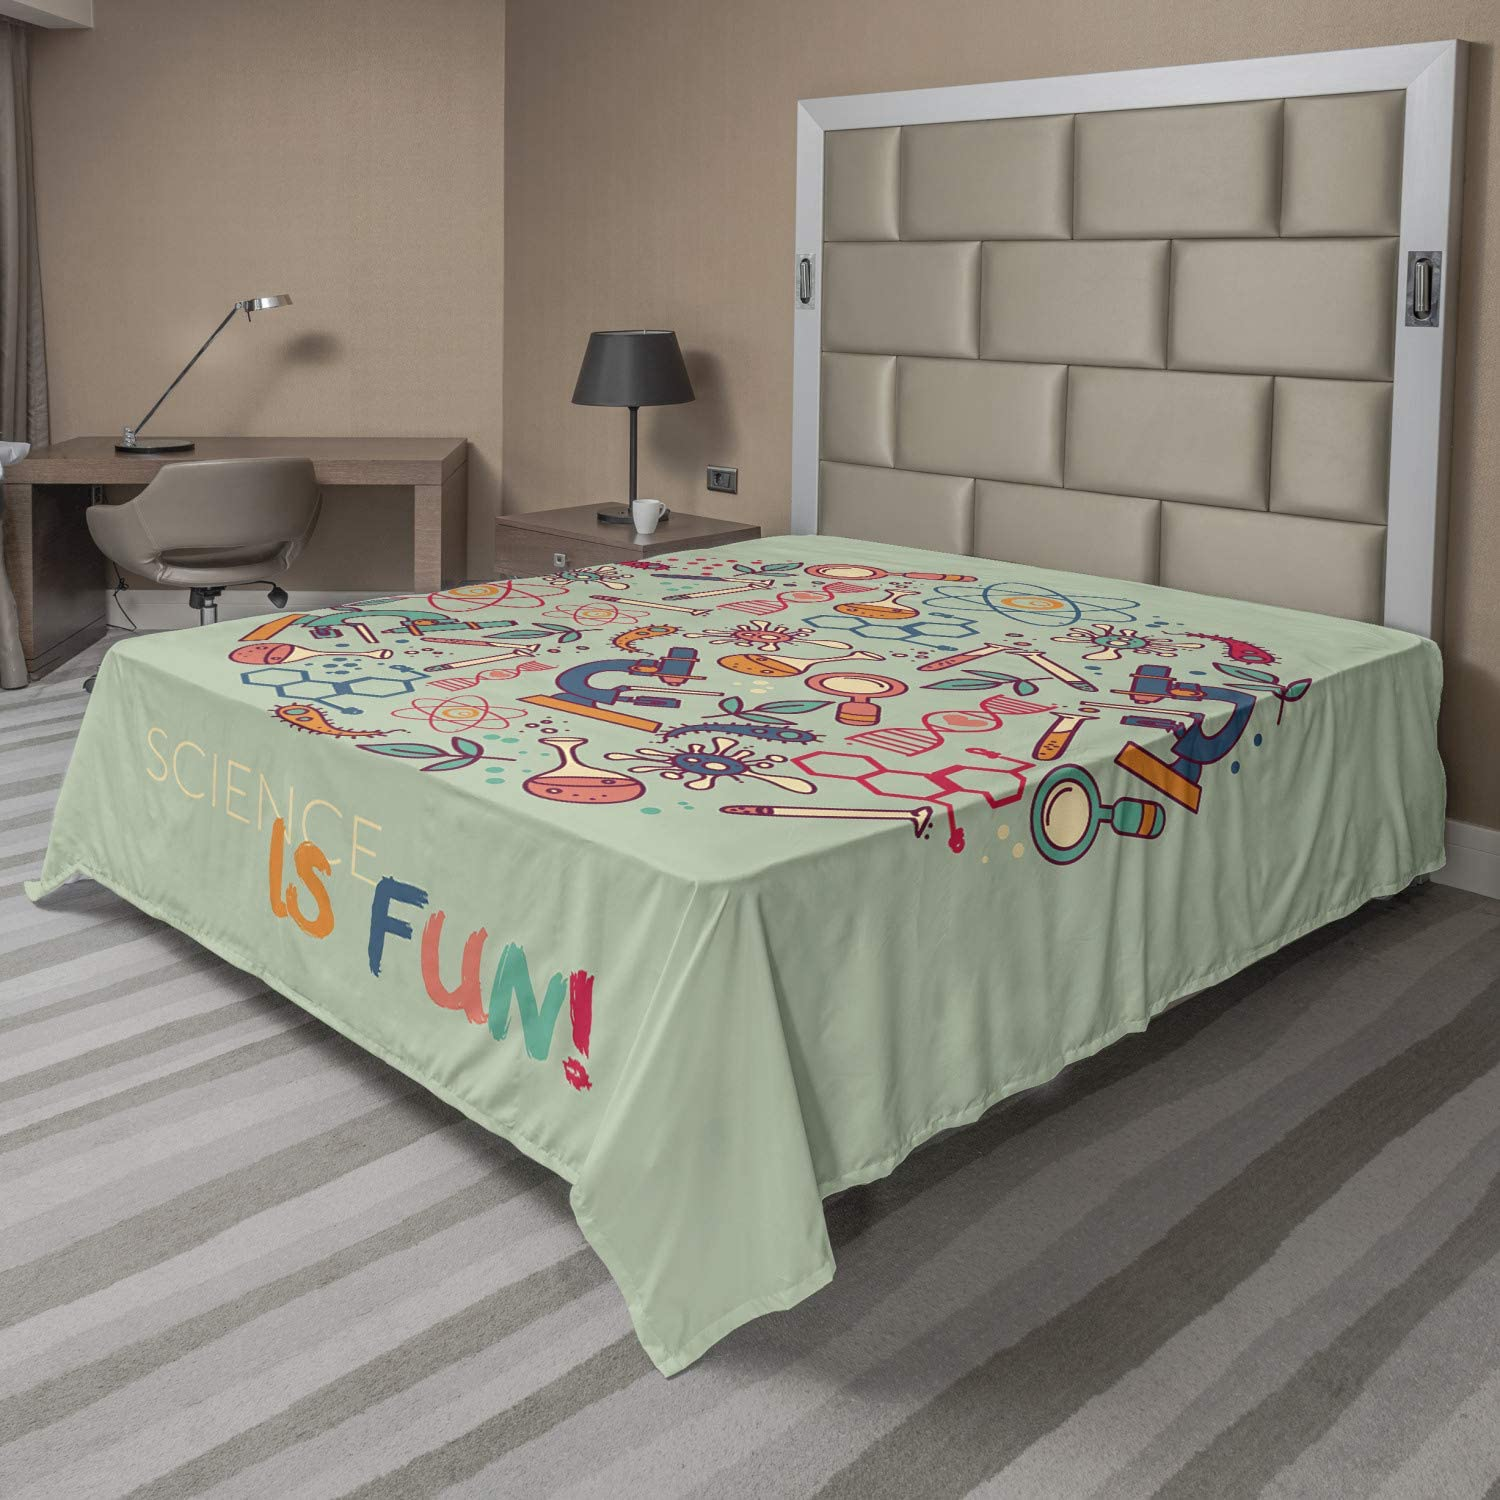 Lunarable Science Flat Sheet San Antonio Mall is with Theme Molecule Cheap mail order sales Fun